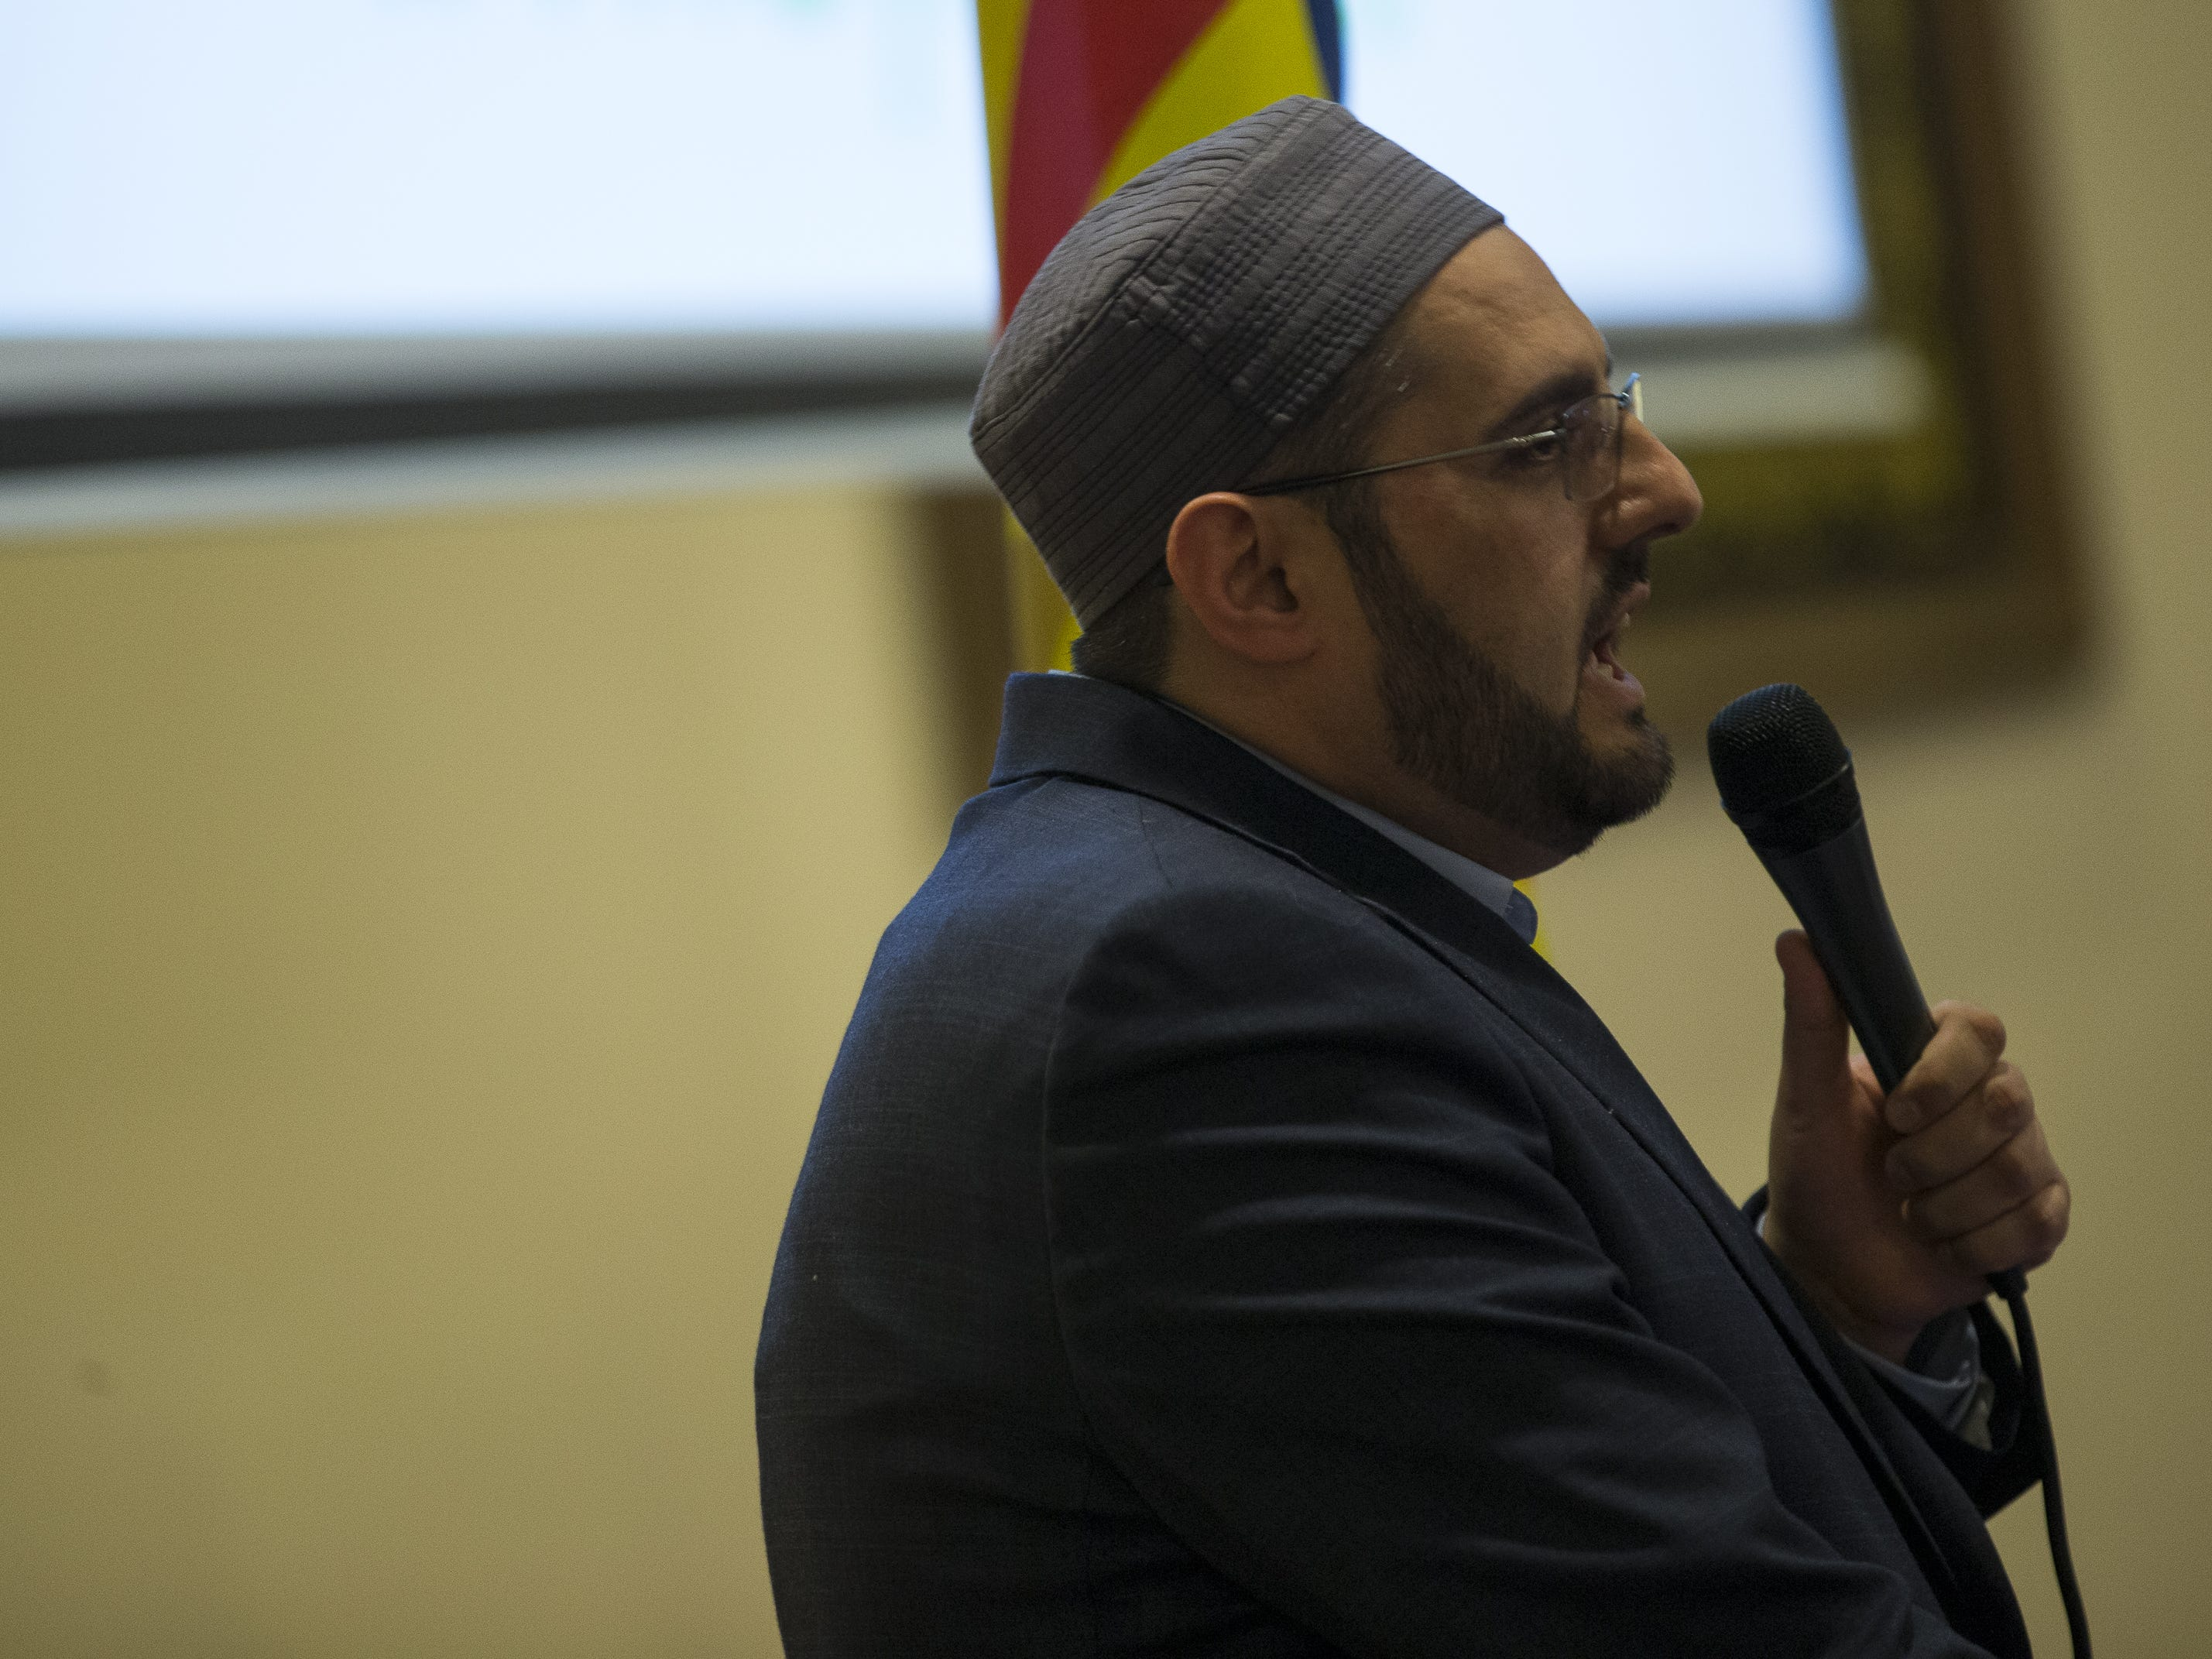 Imaam Didmar Faja, of the United Islamic Center of Arizona, speaks at a vigil held at the Islamic Center of Northeast Valley in Scottsdale, Ariz., on Sunday, March 17, 2019, in memory of the Christchurch New Zealand shooting victims.